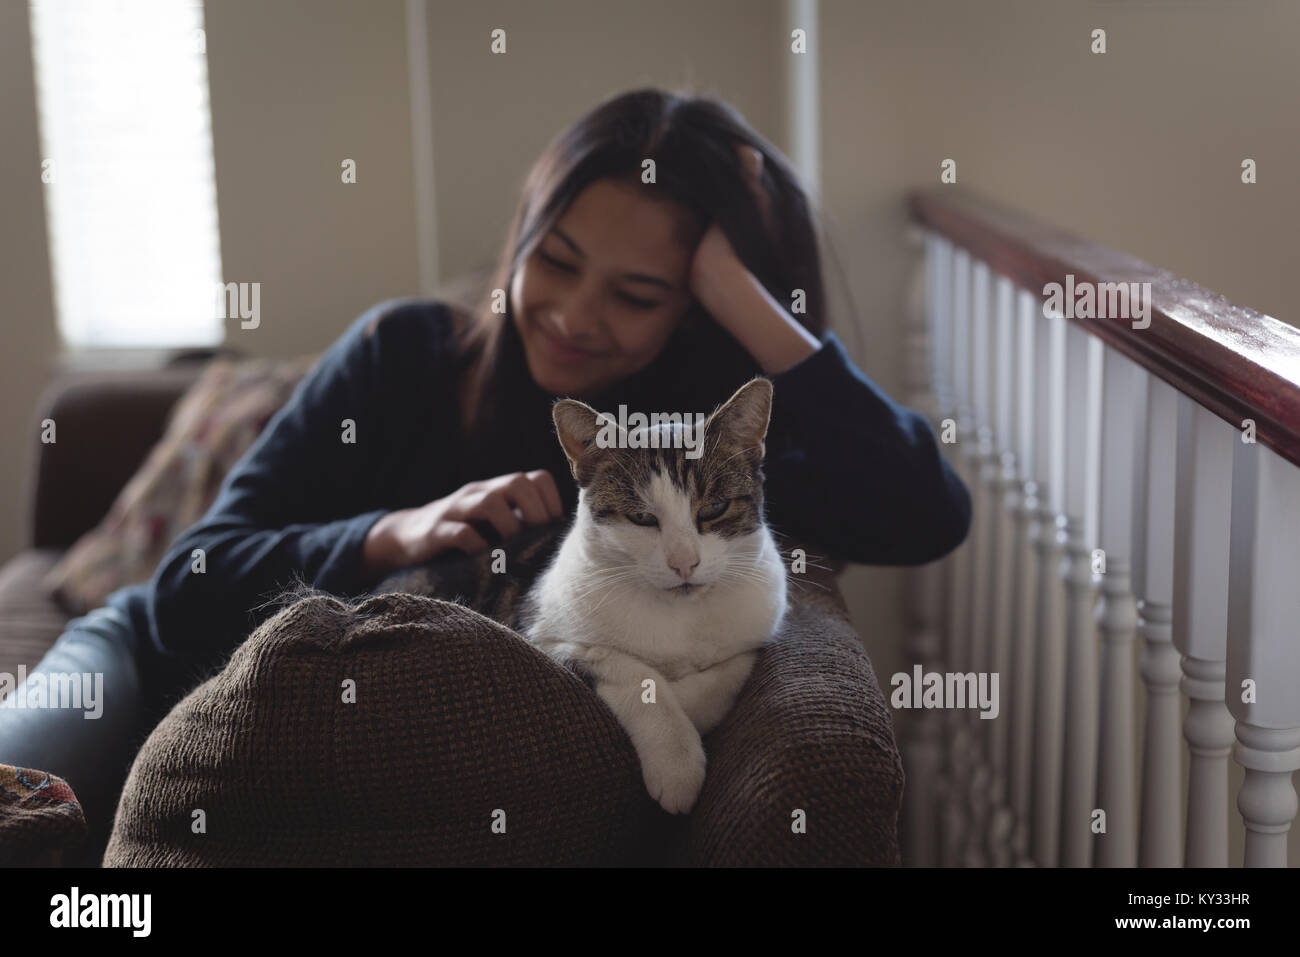 Teenage girl sitting with cat on sofa in living room Photo Stock